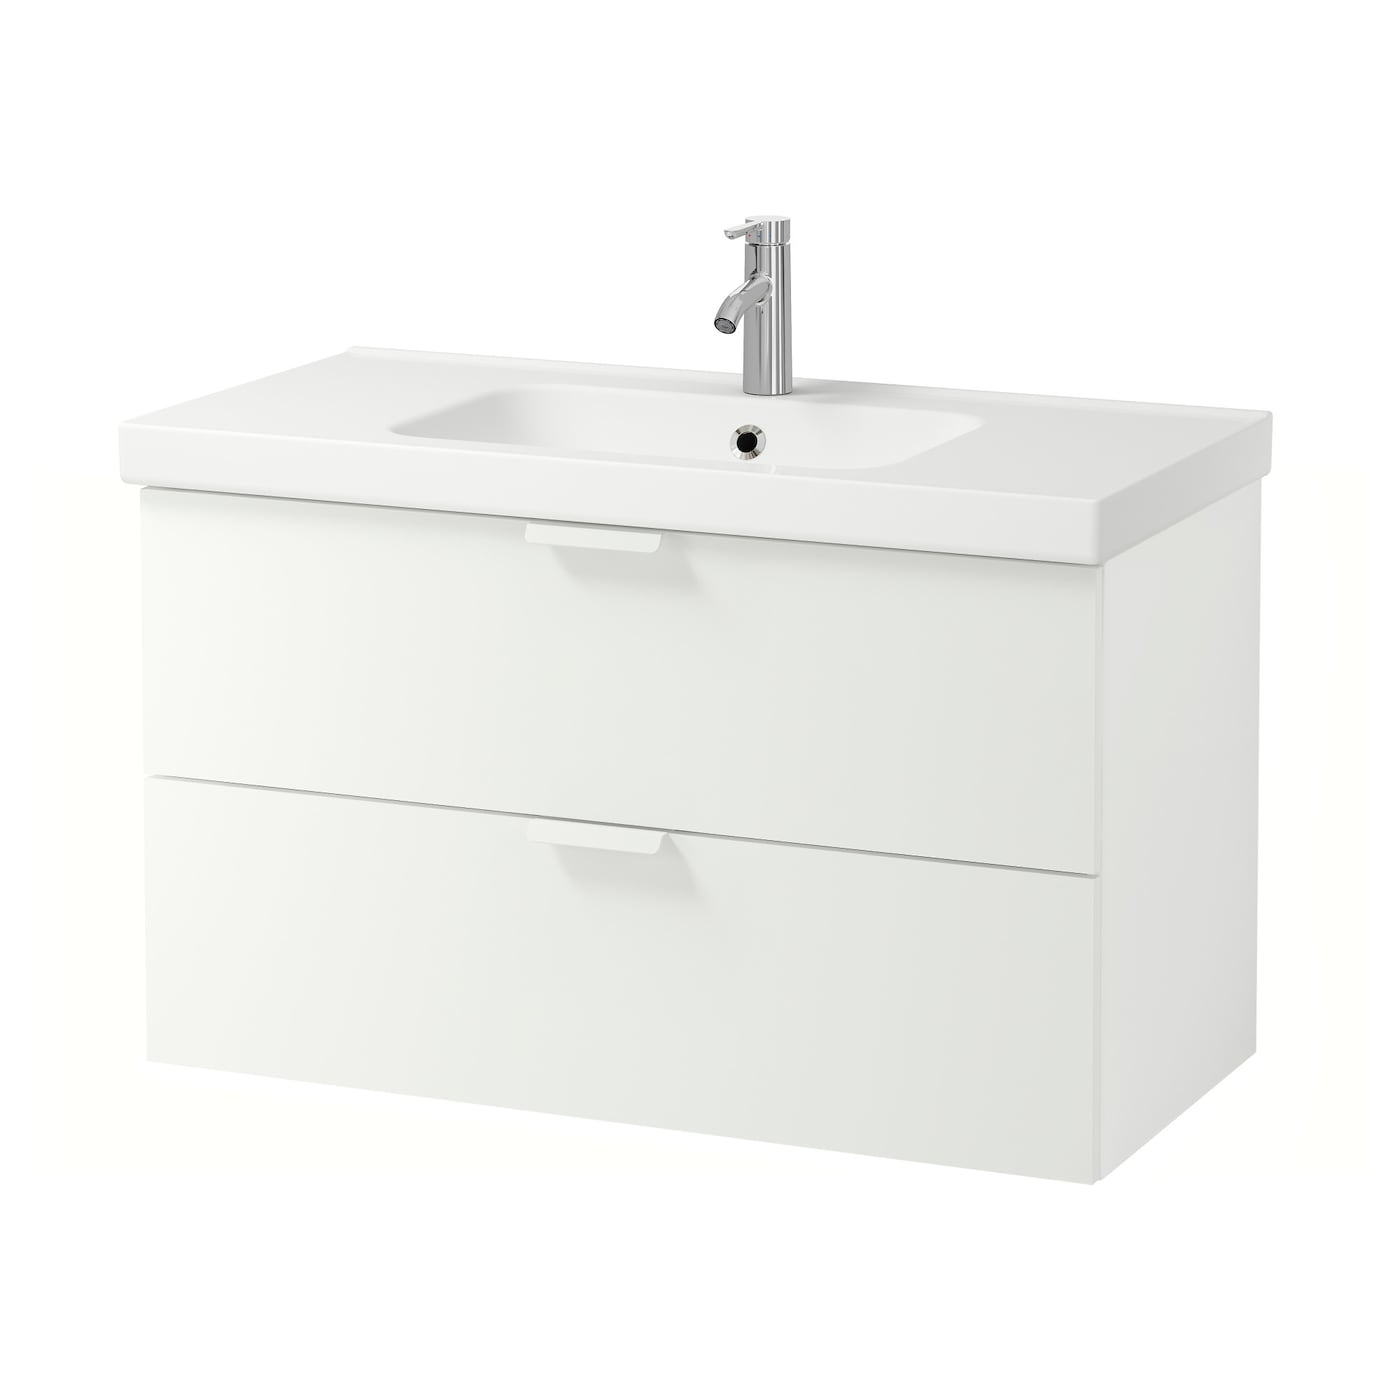 godmorgon odensvik wash stand with 2 drawers white. Black Bedroom Furniture Sets. Home Design Ideas